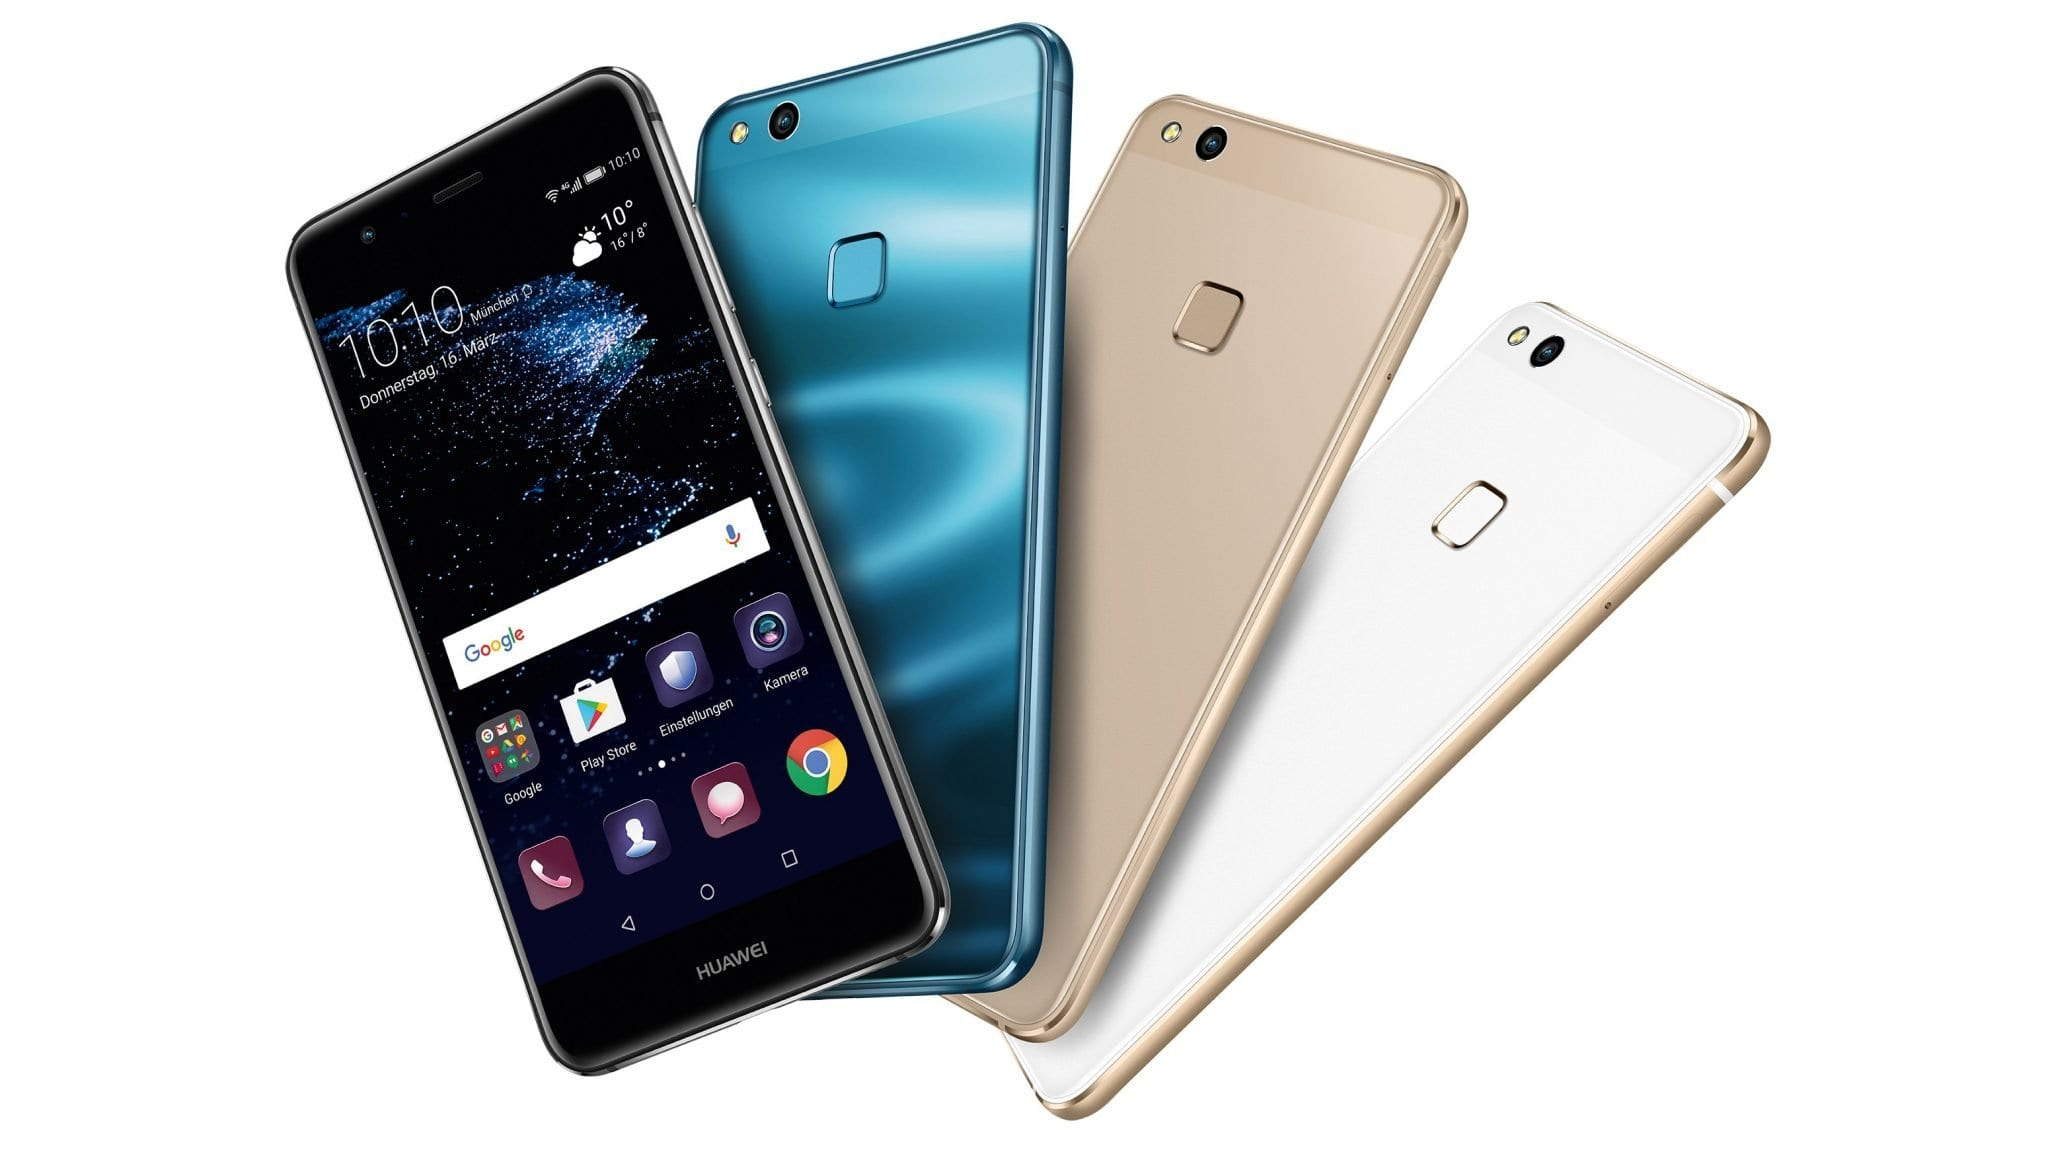 Huawei P10 Lite common issues, and how to resolve them